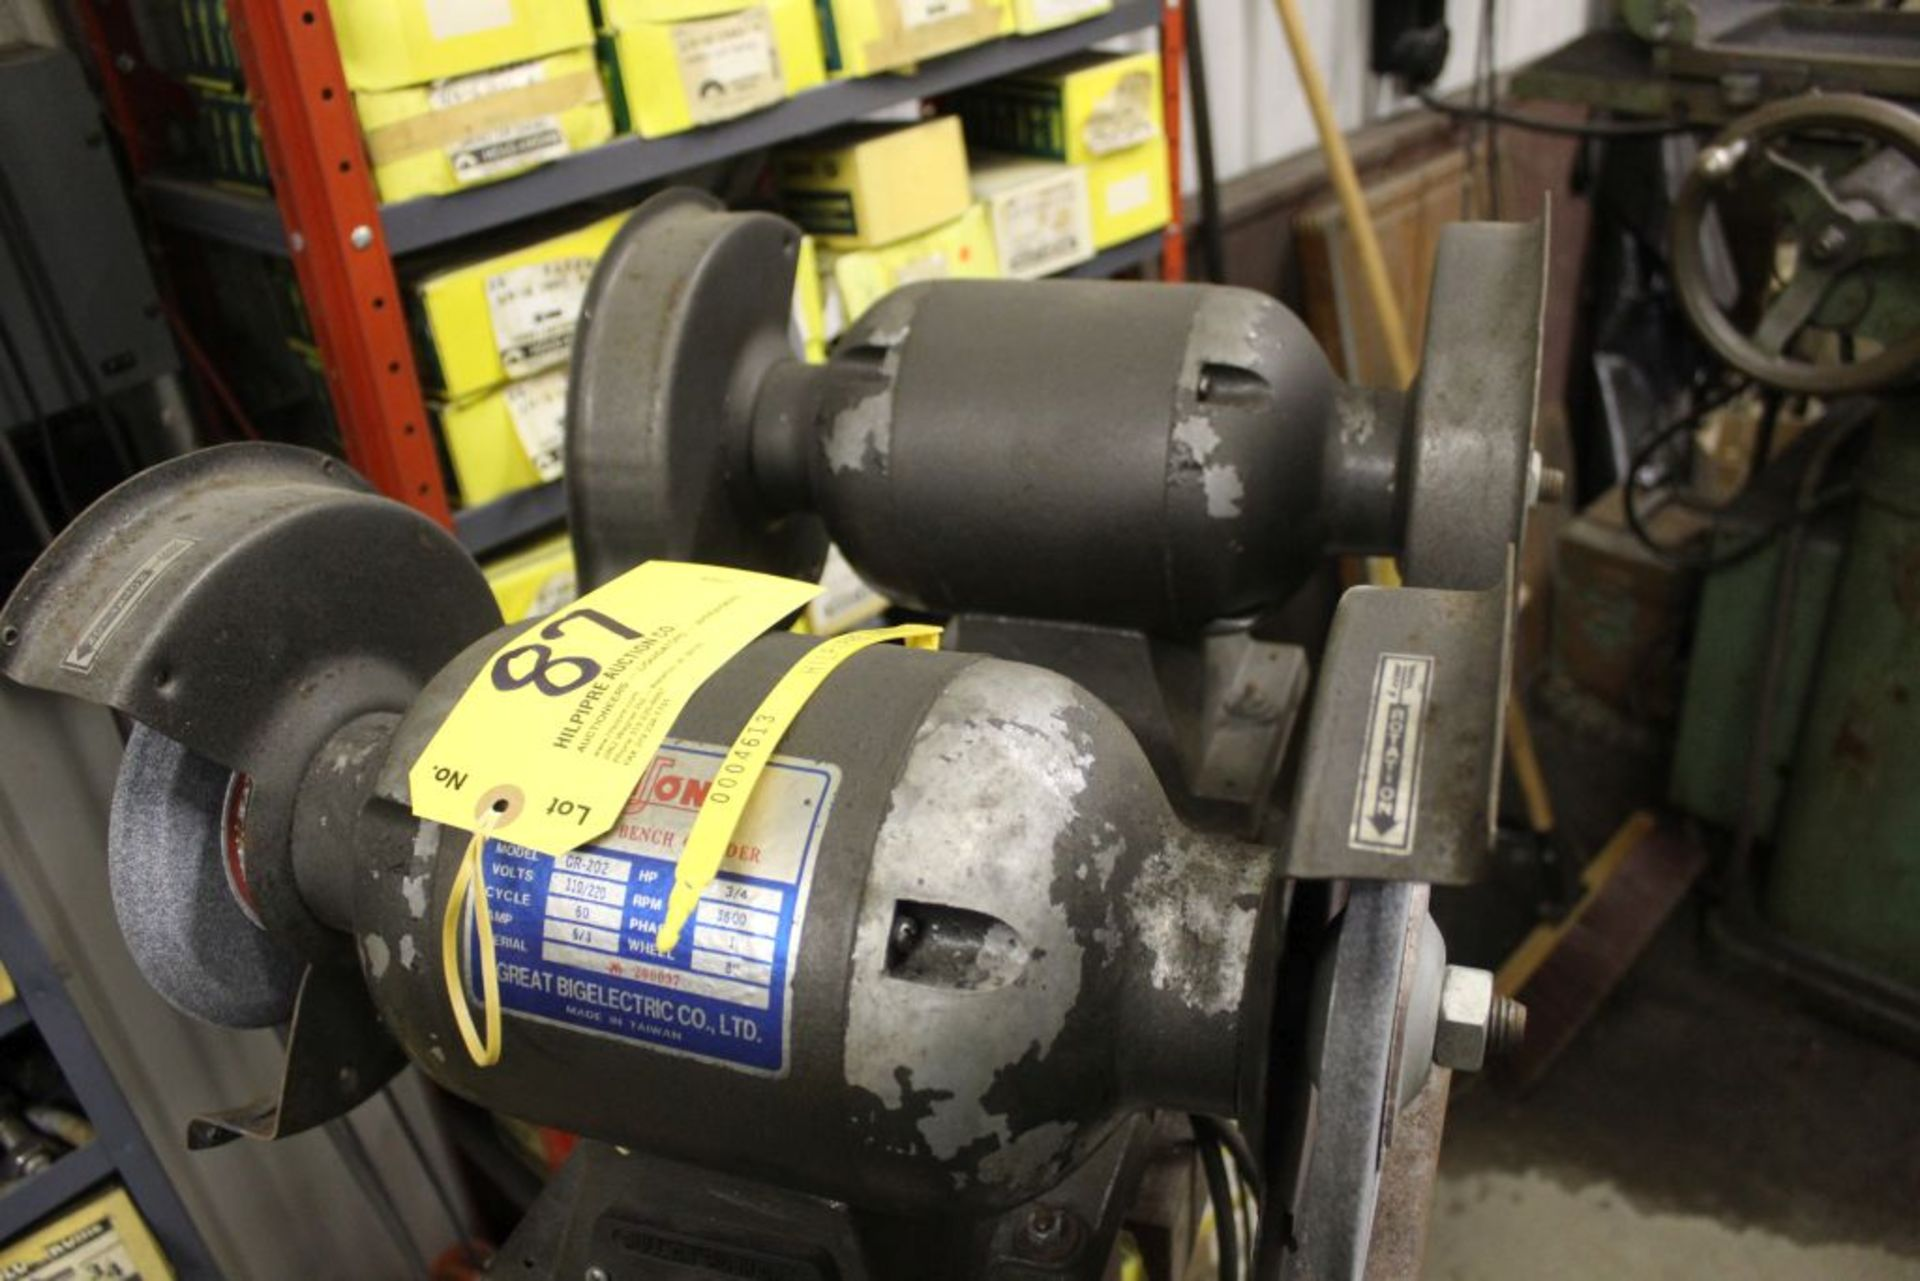 Niuon G202 double spindle grinders, 3/4 hp on stand. - Image 3 of 4